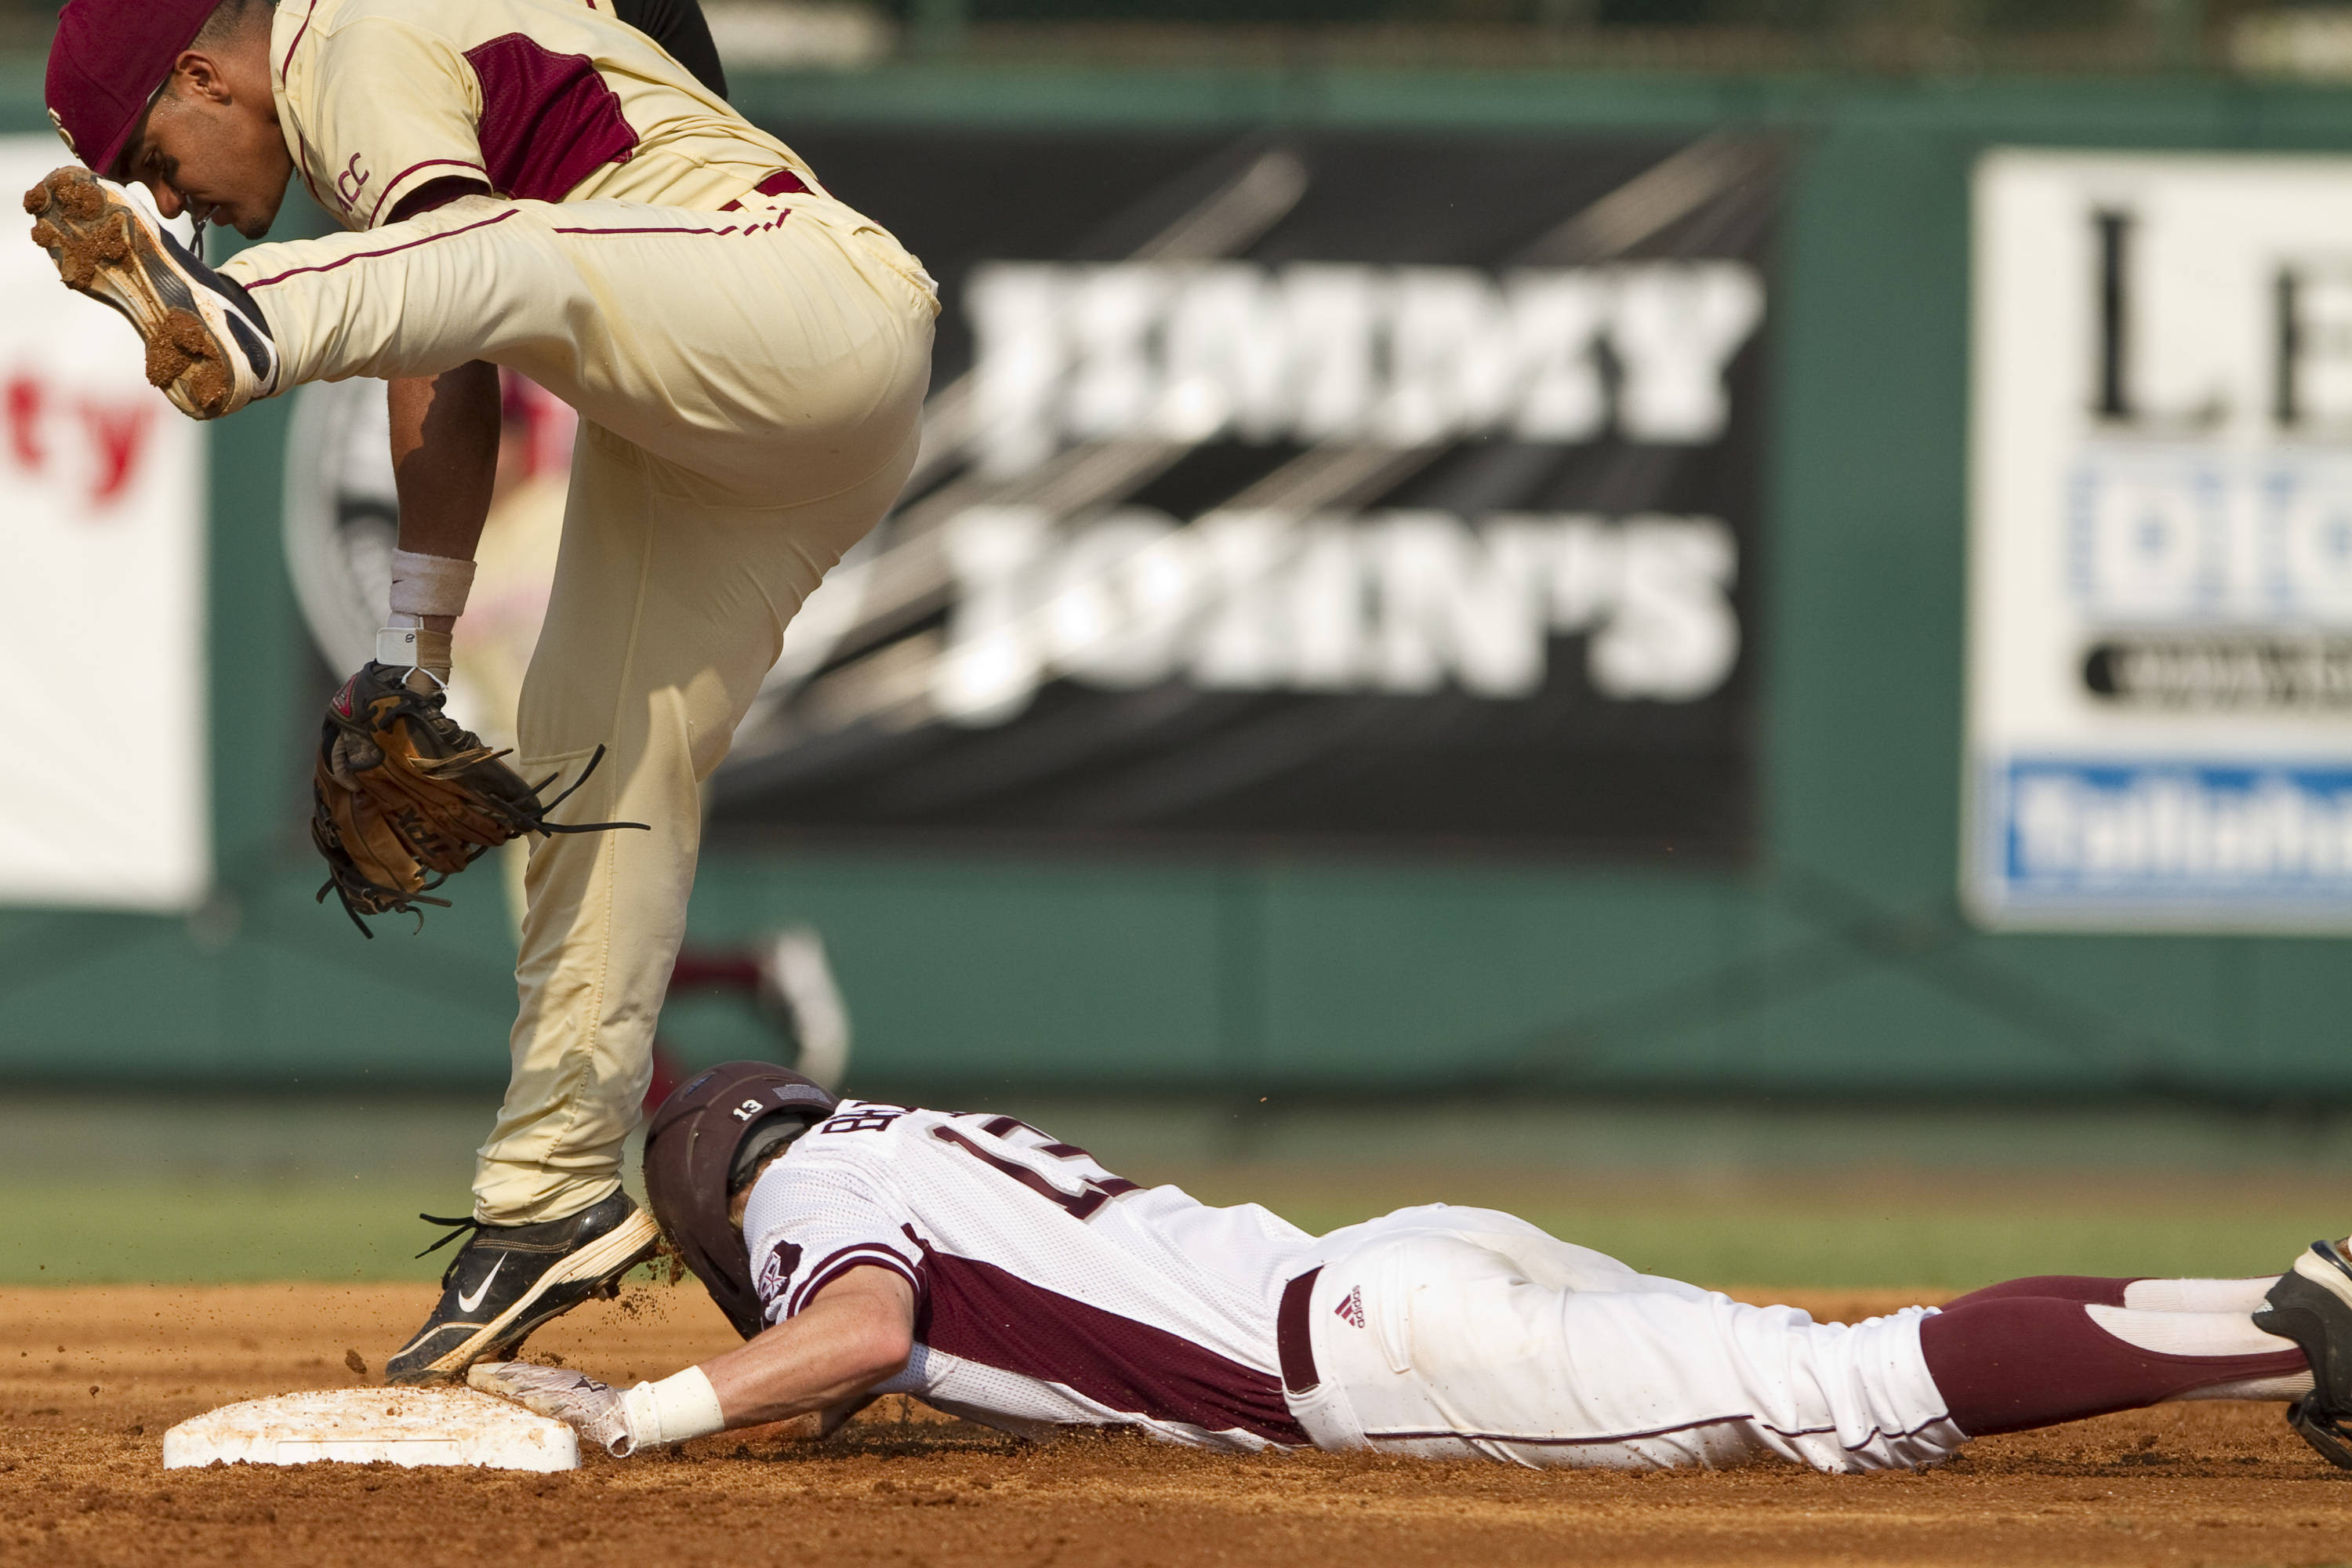 Devon Travis (8) attempts to tag a runner after jumping to catch a high ball.